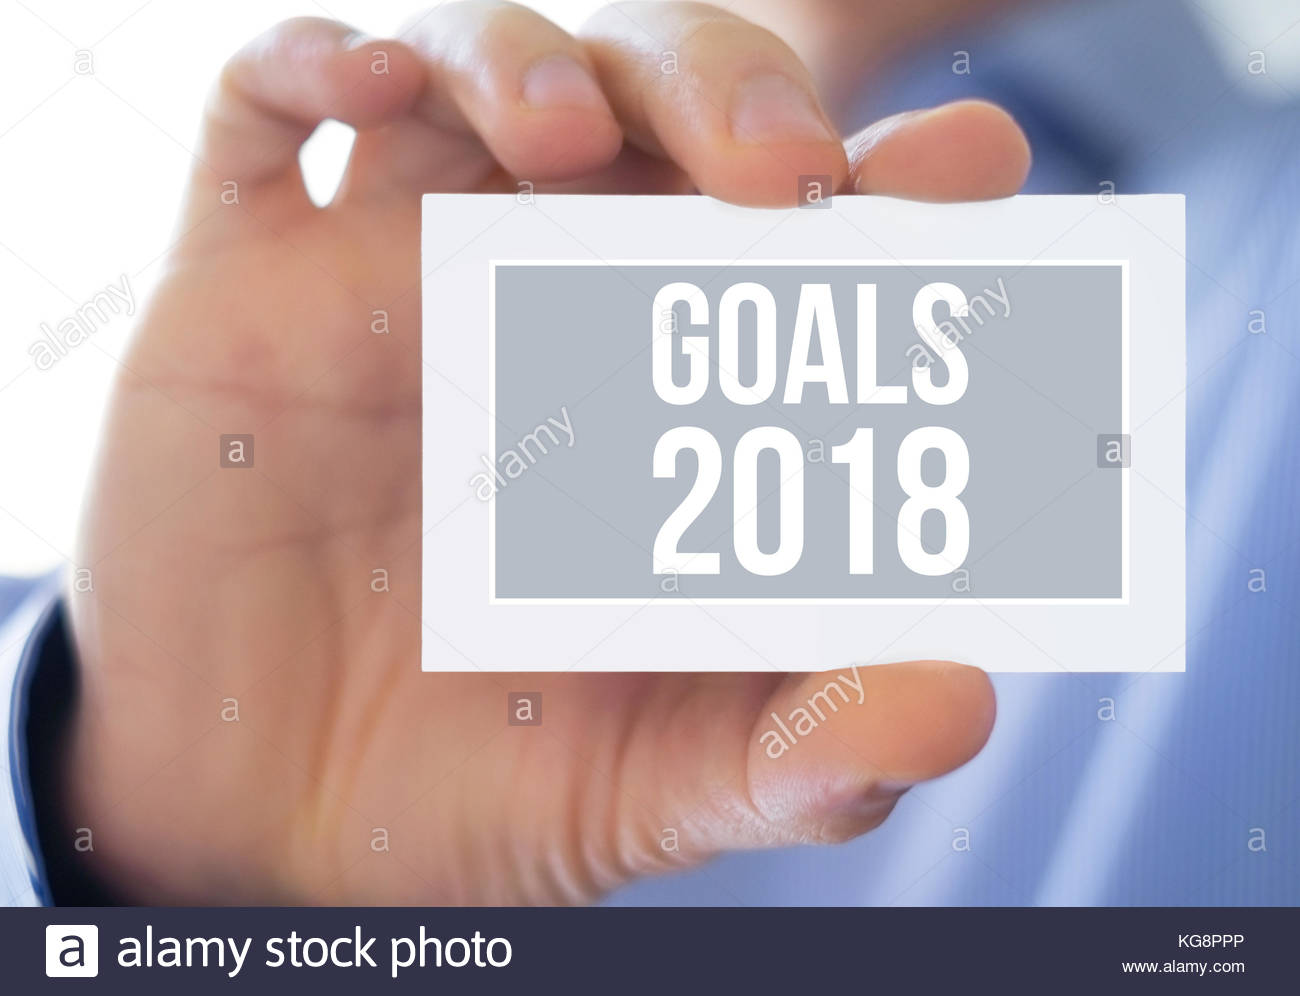 Goals for 2018 - Stock Image